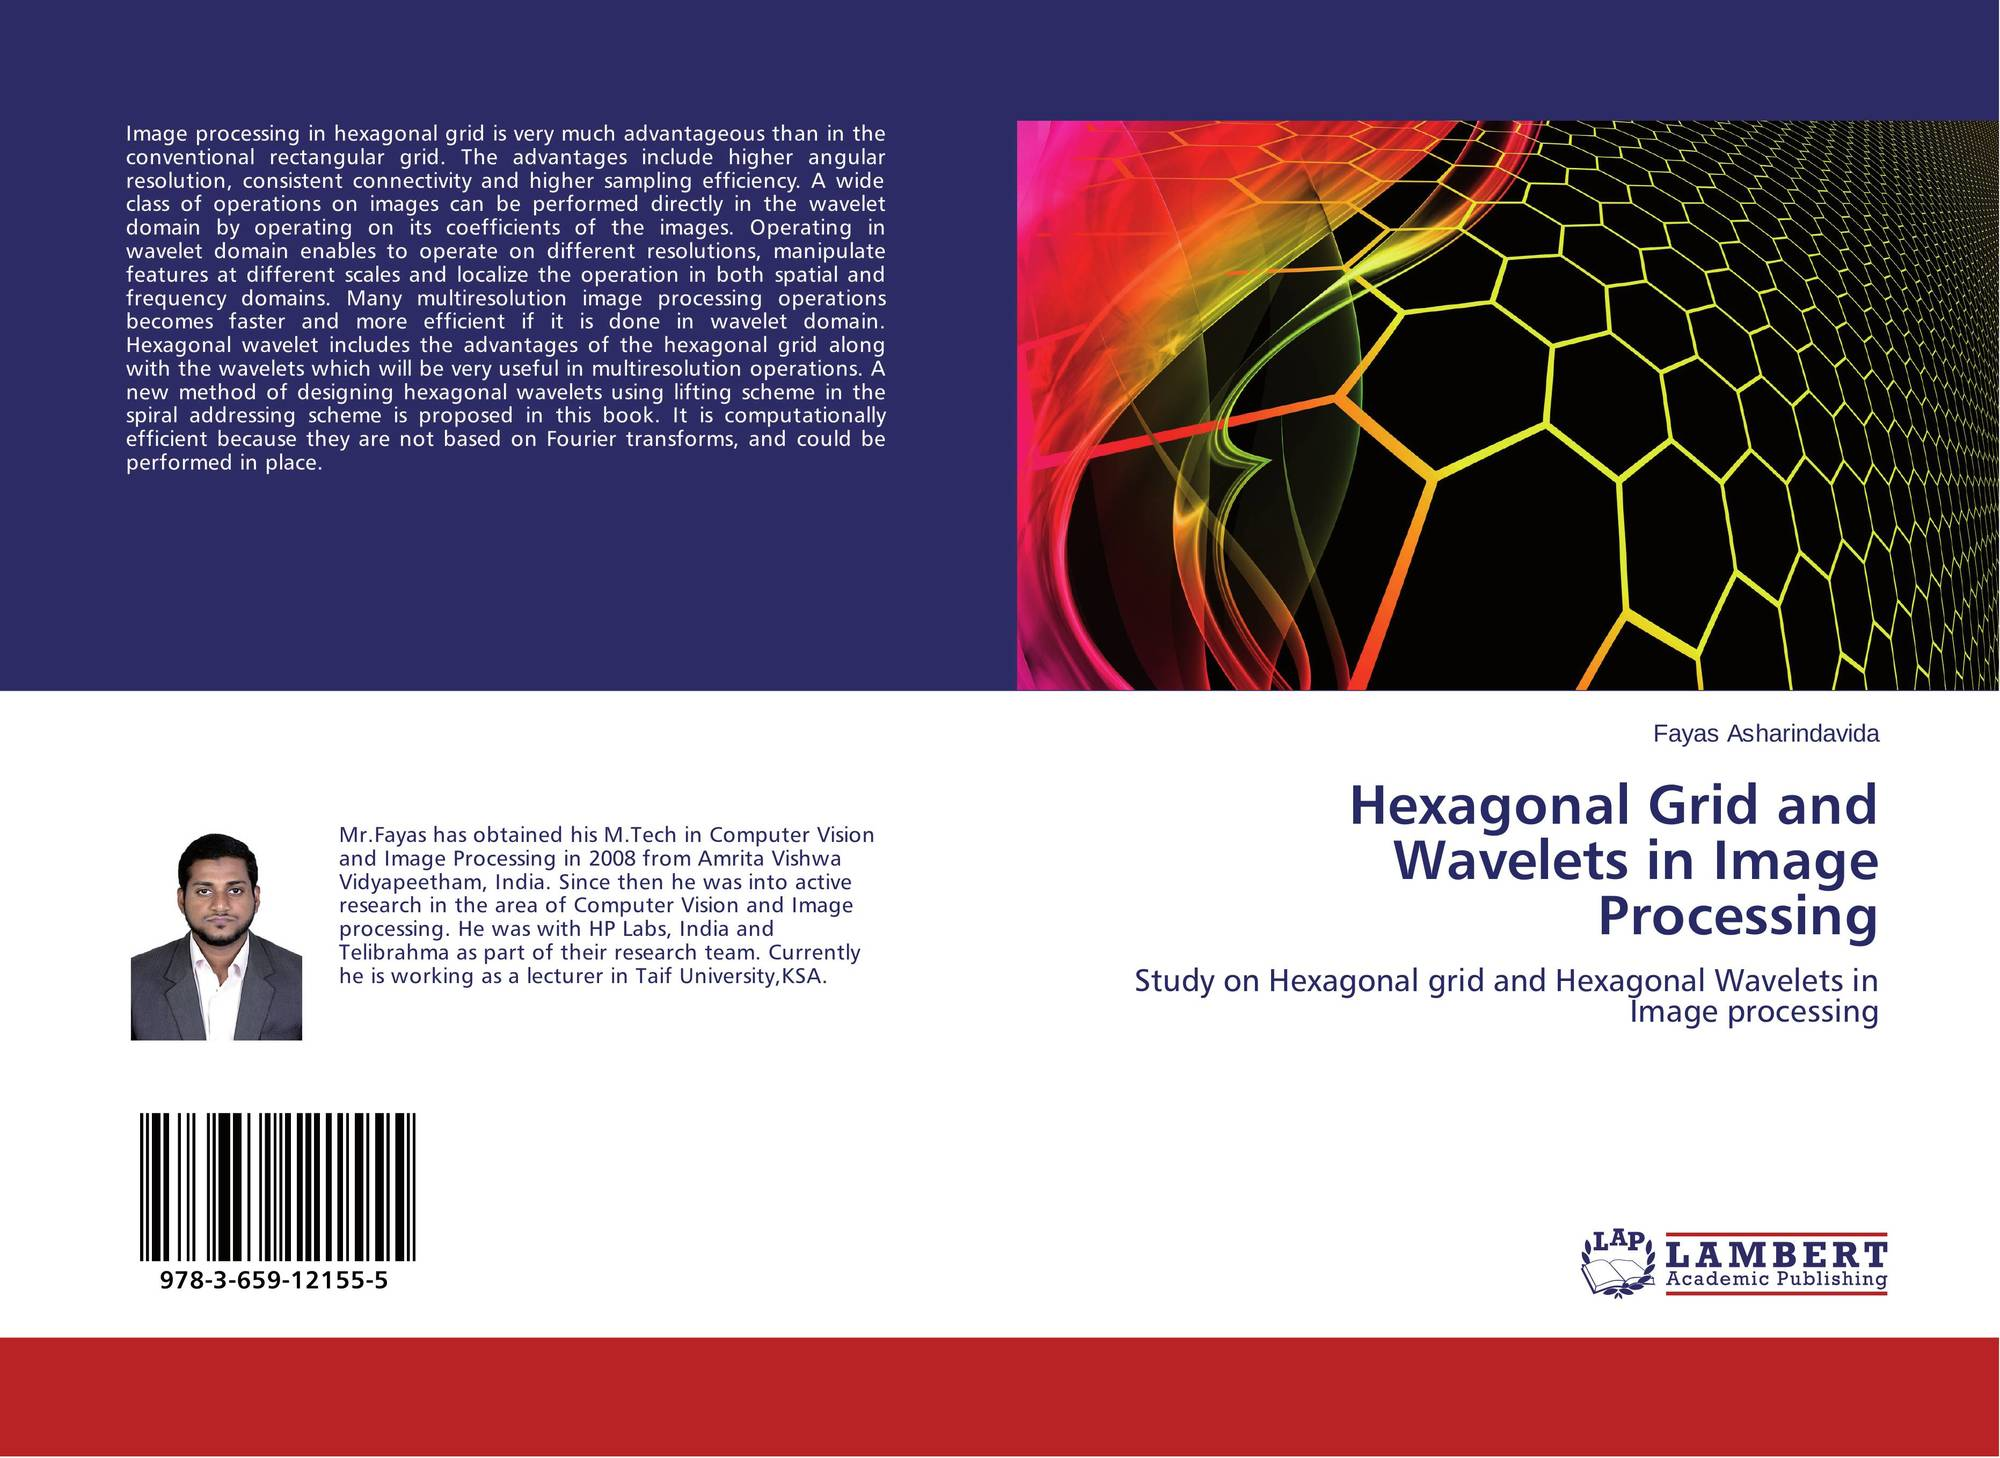 Hexagonal Grid and Wavelets in Image Processing, 978-3-659